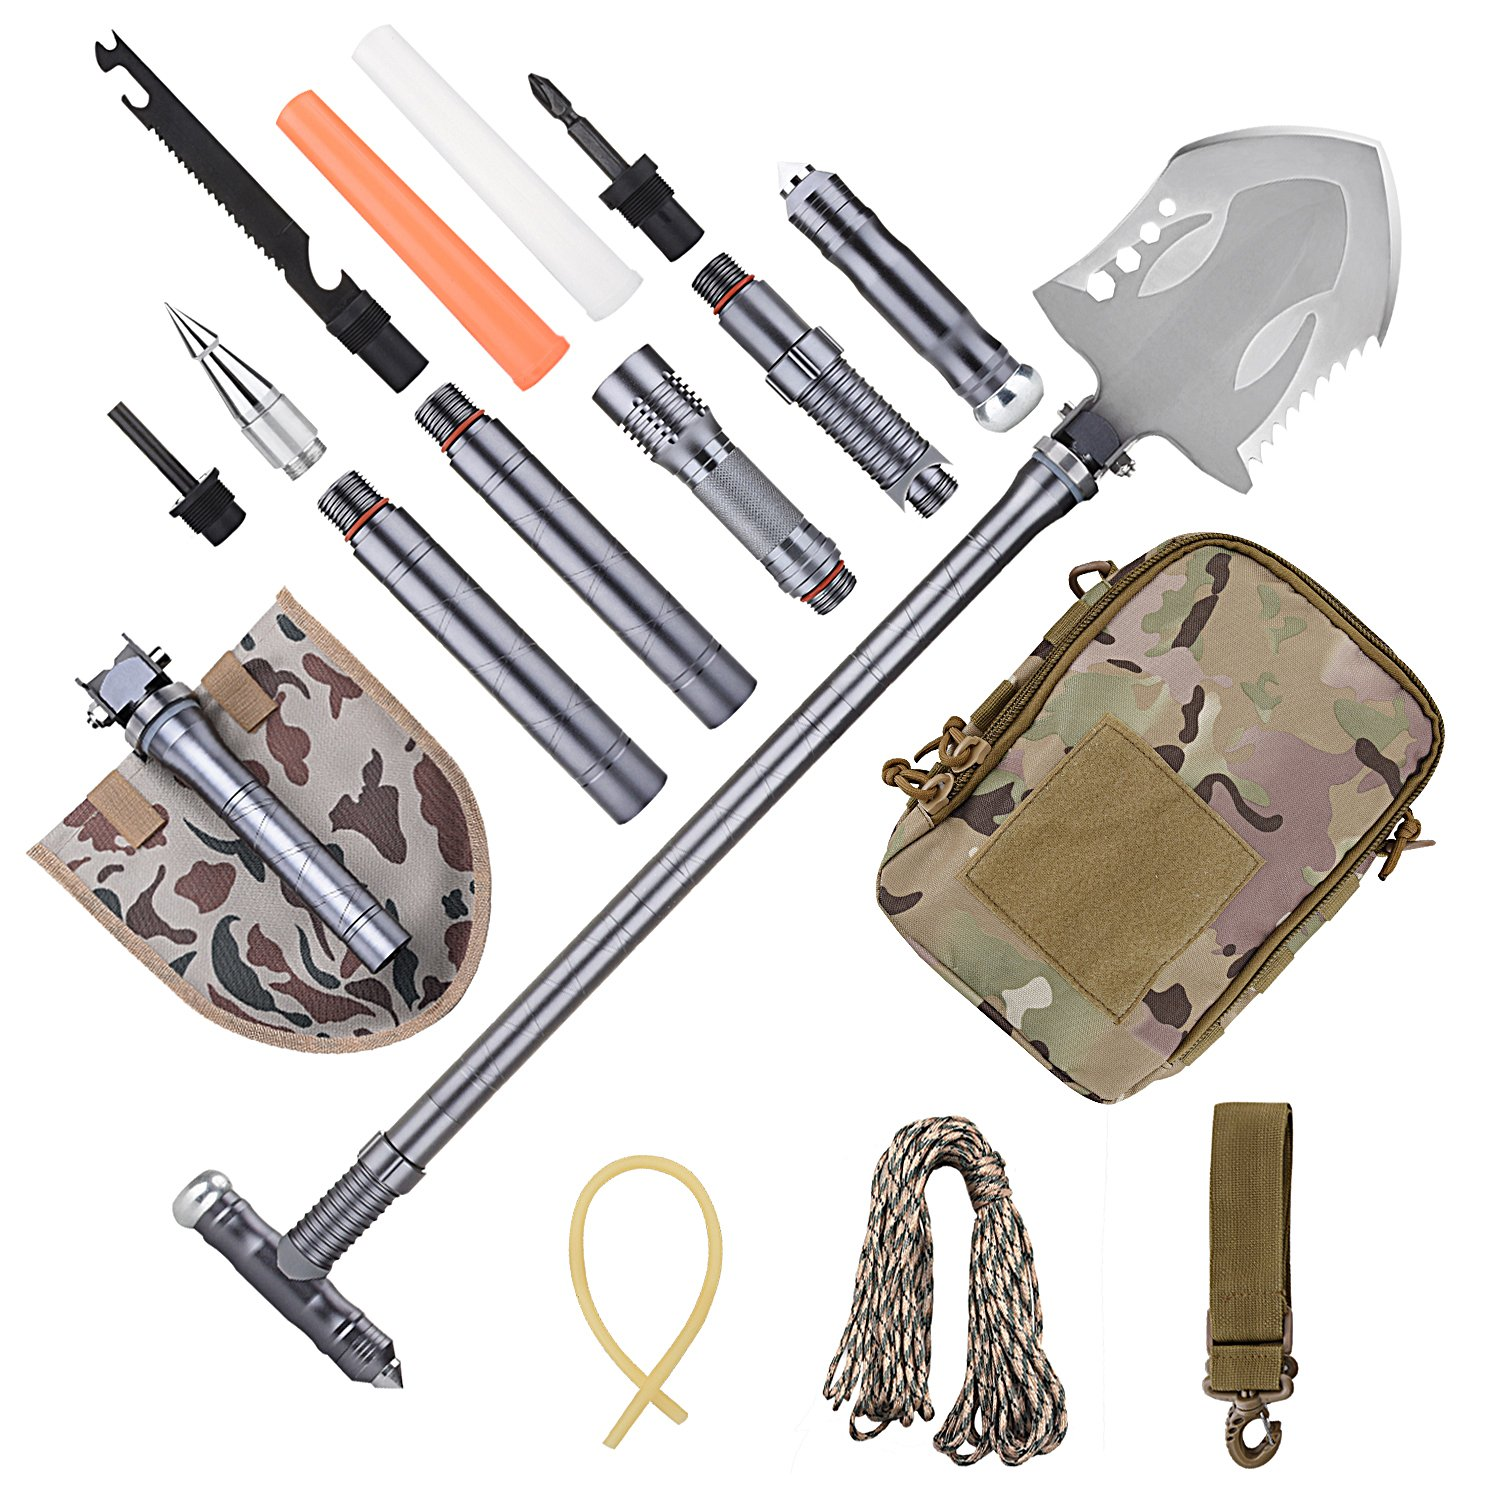 ANZESER New Outdoor Military Survival Folding Shovel with Flashlight - Multifunctional Portable Military Kit for Camping Hiking Outdoor Advent, Compact Emergency Kit,Heavy Duty Survival Gear by ANZESER